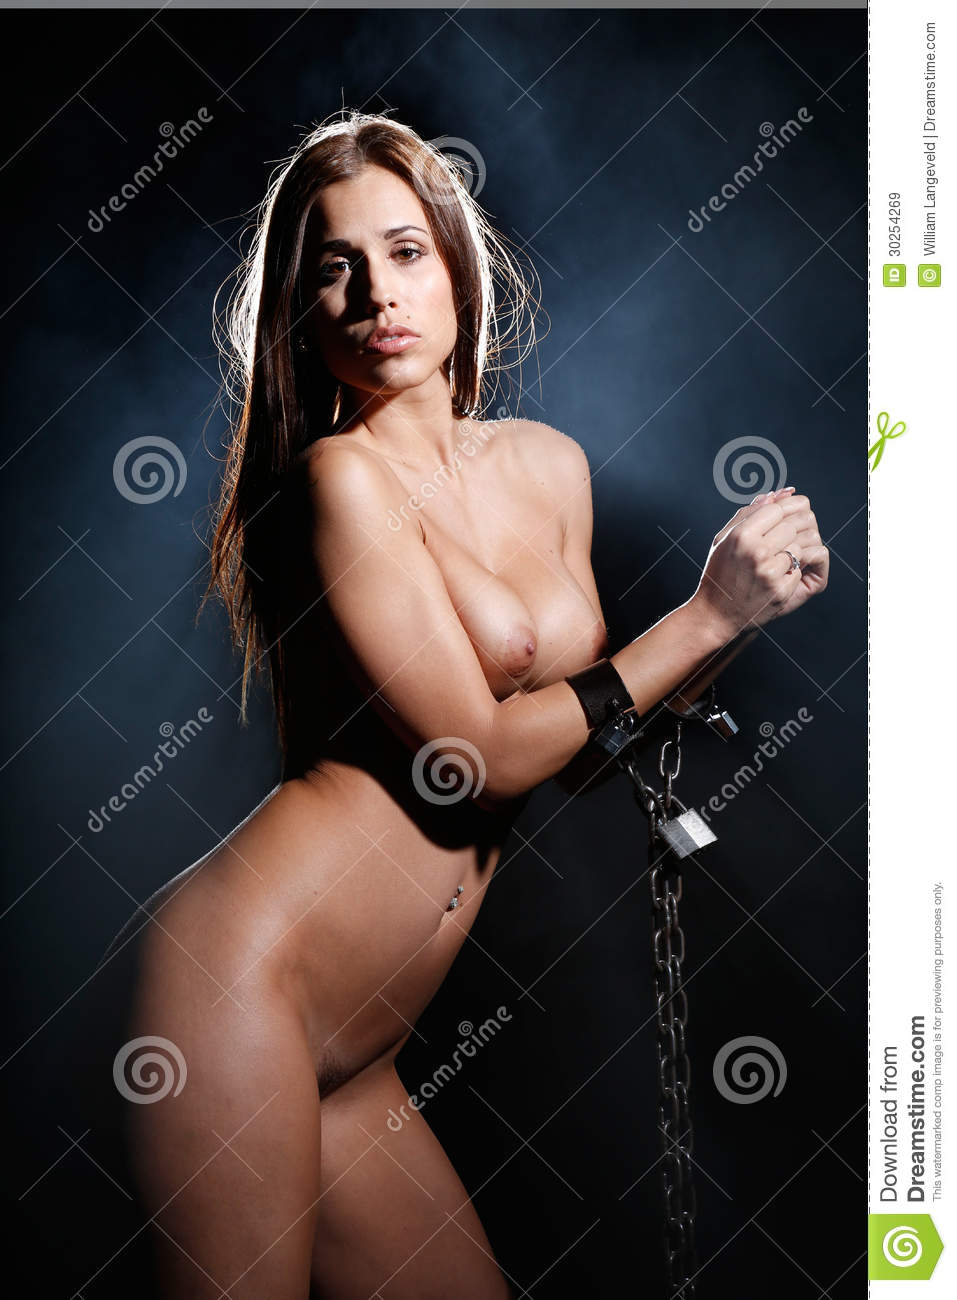 Bondage Art Style With Nude Or Naked Woman Tied Up With A -7938